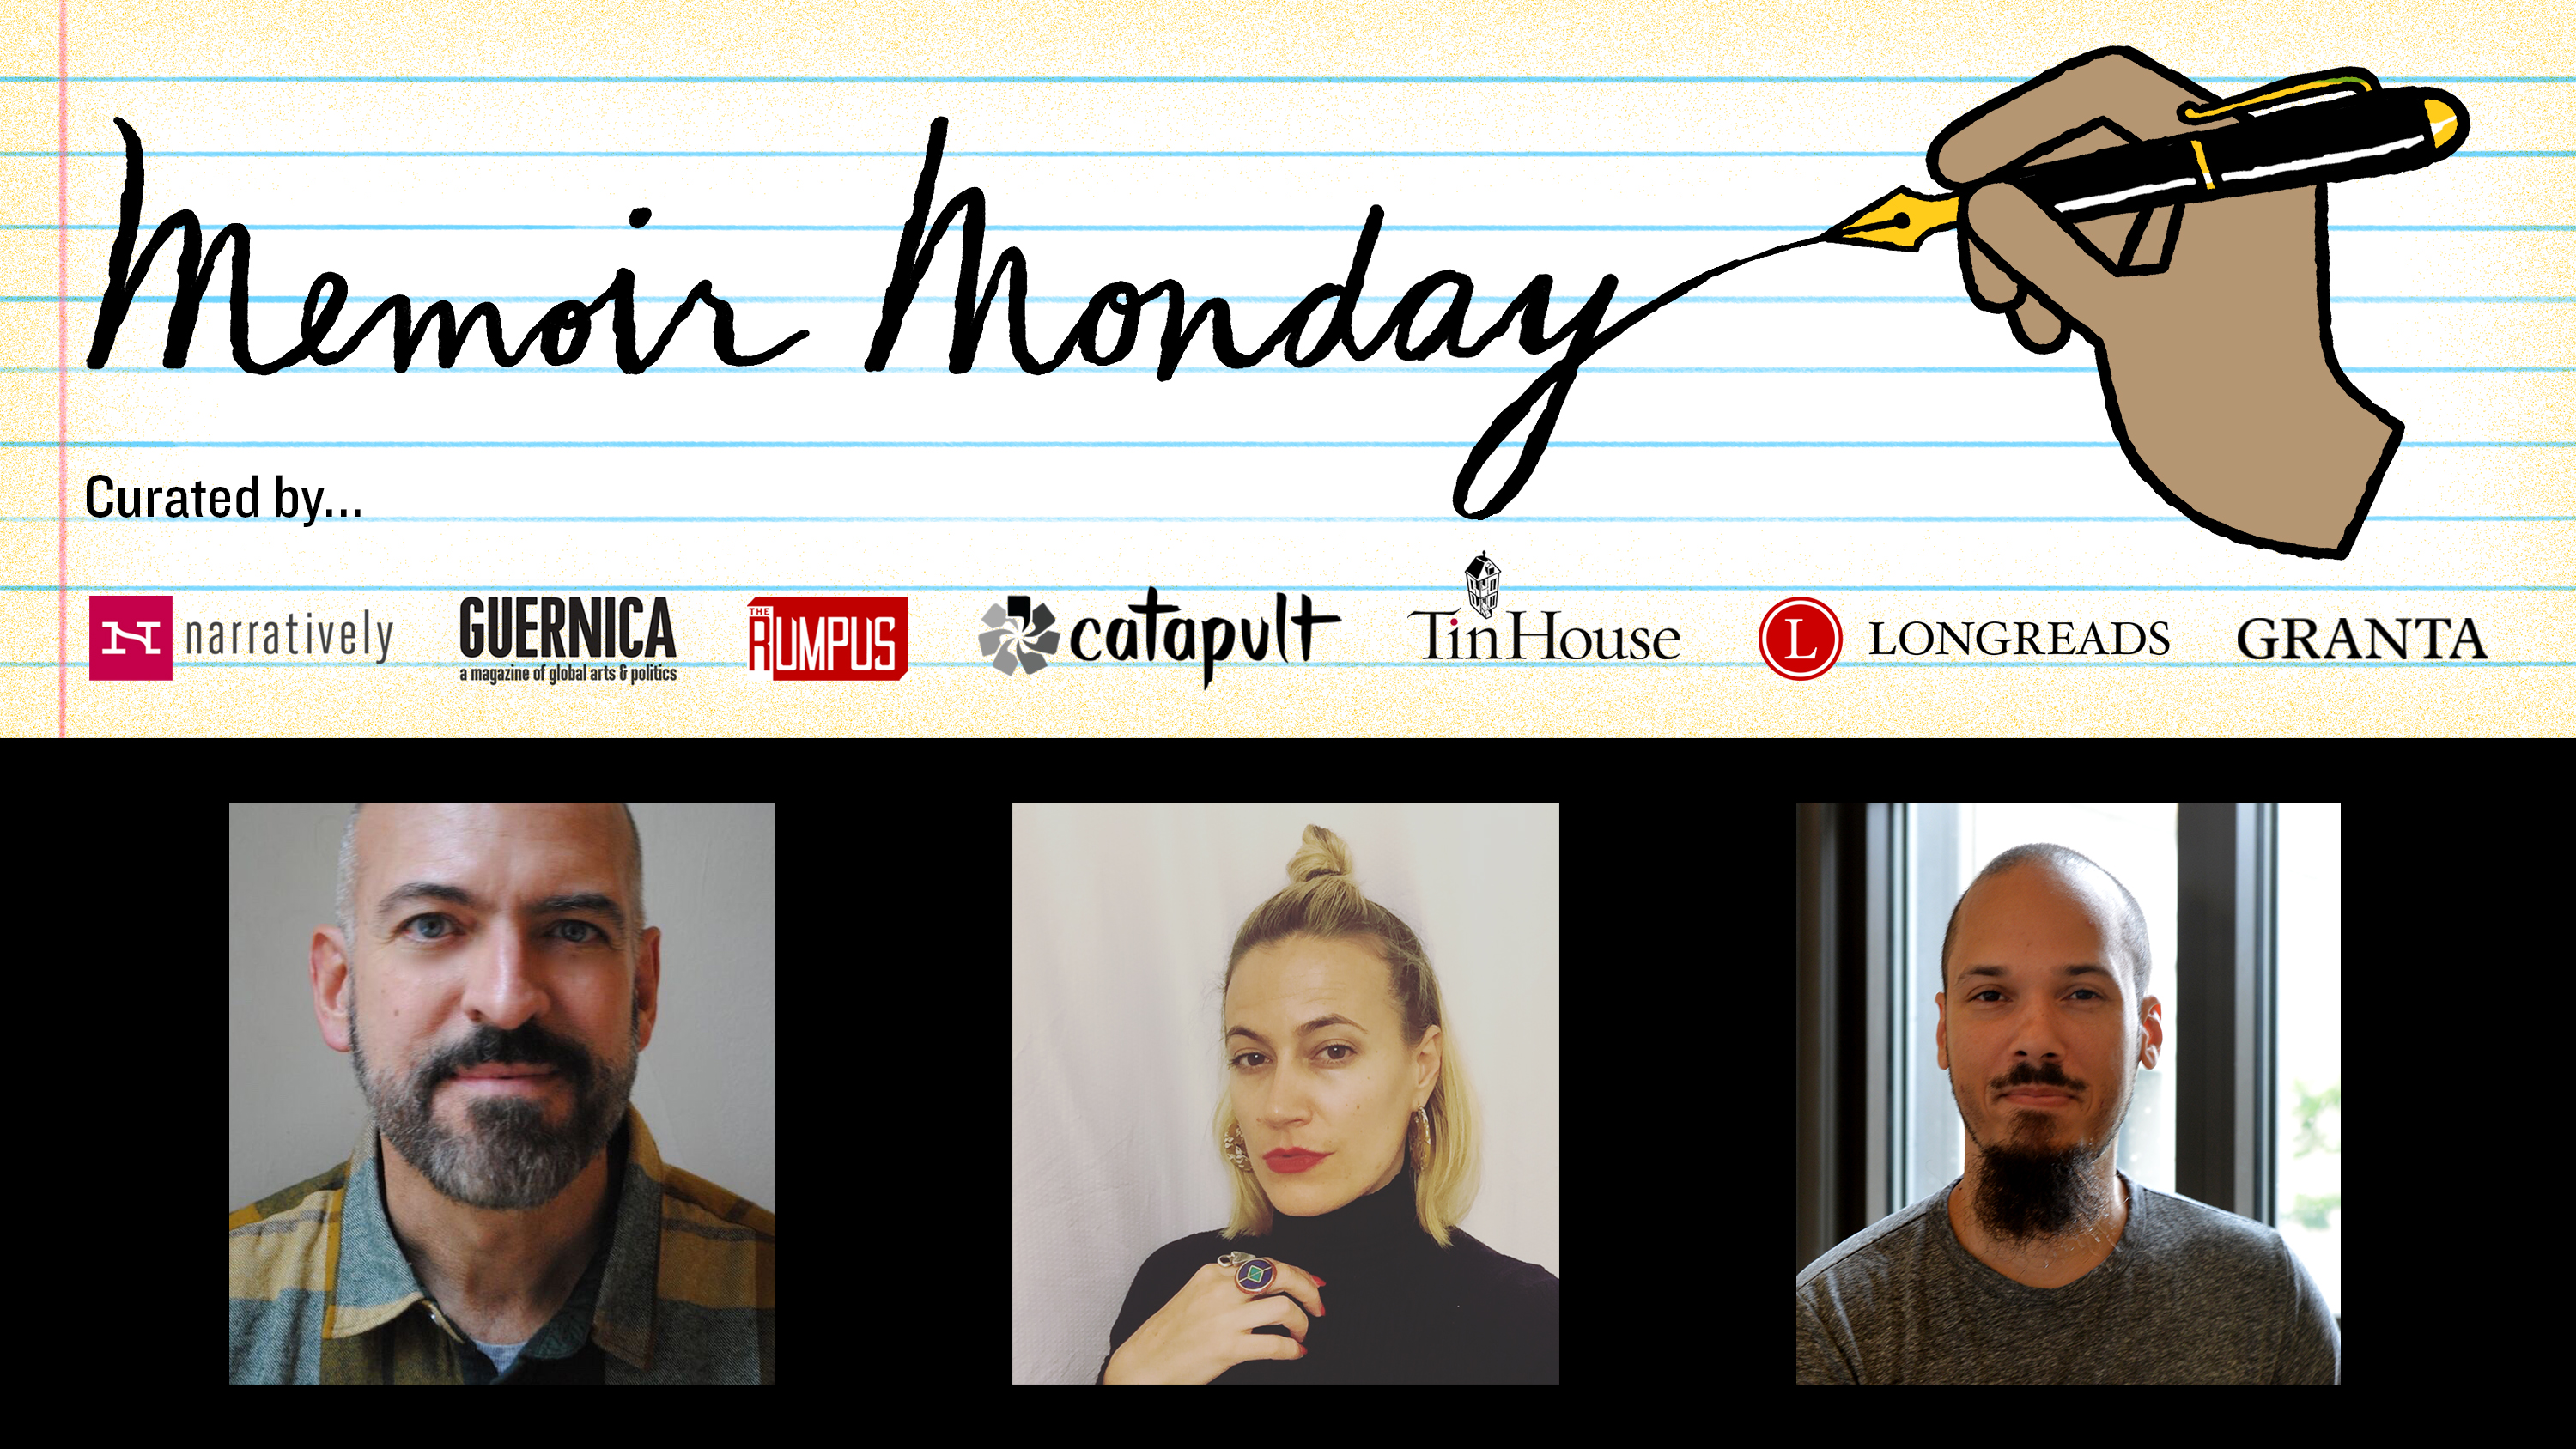 Memoir Monday: Featuring Readings by Paul Lisicky, Nina St. Pierre, and Alcy Leyva — Hosted by Lilly Dancyger